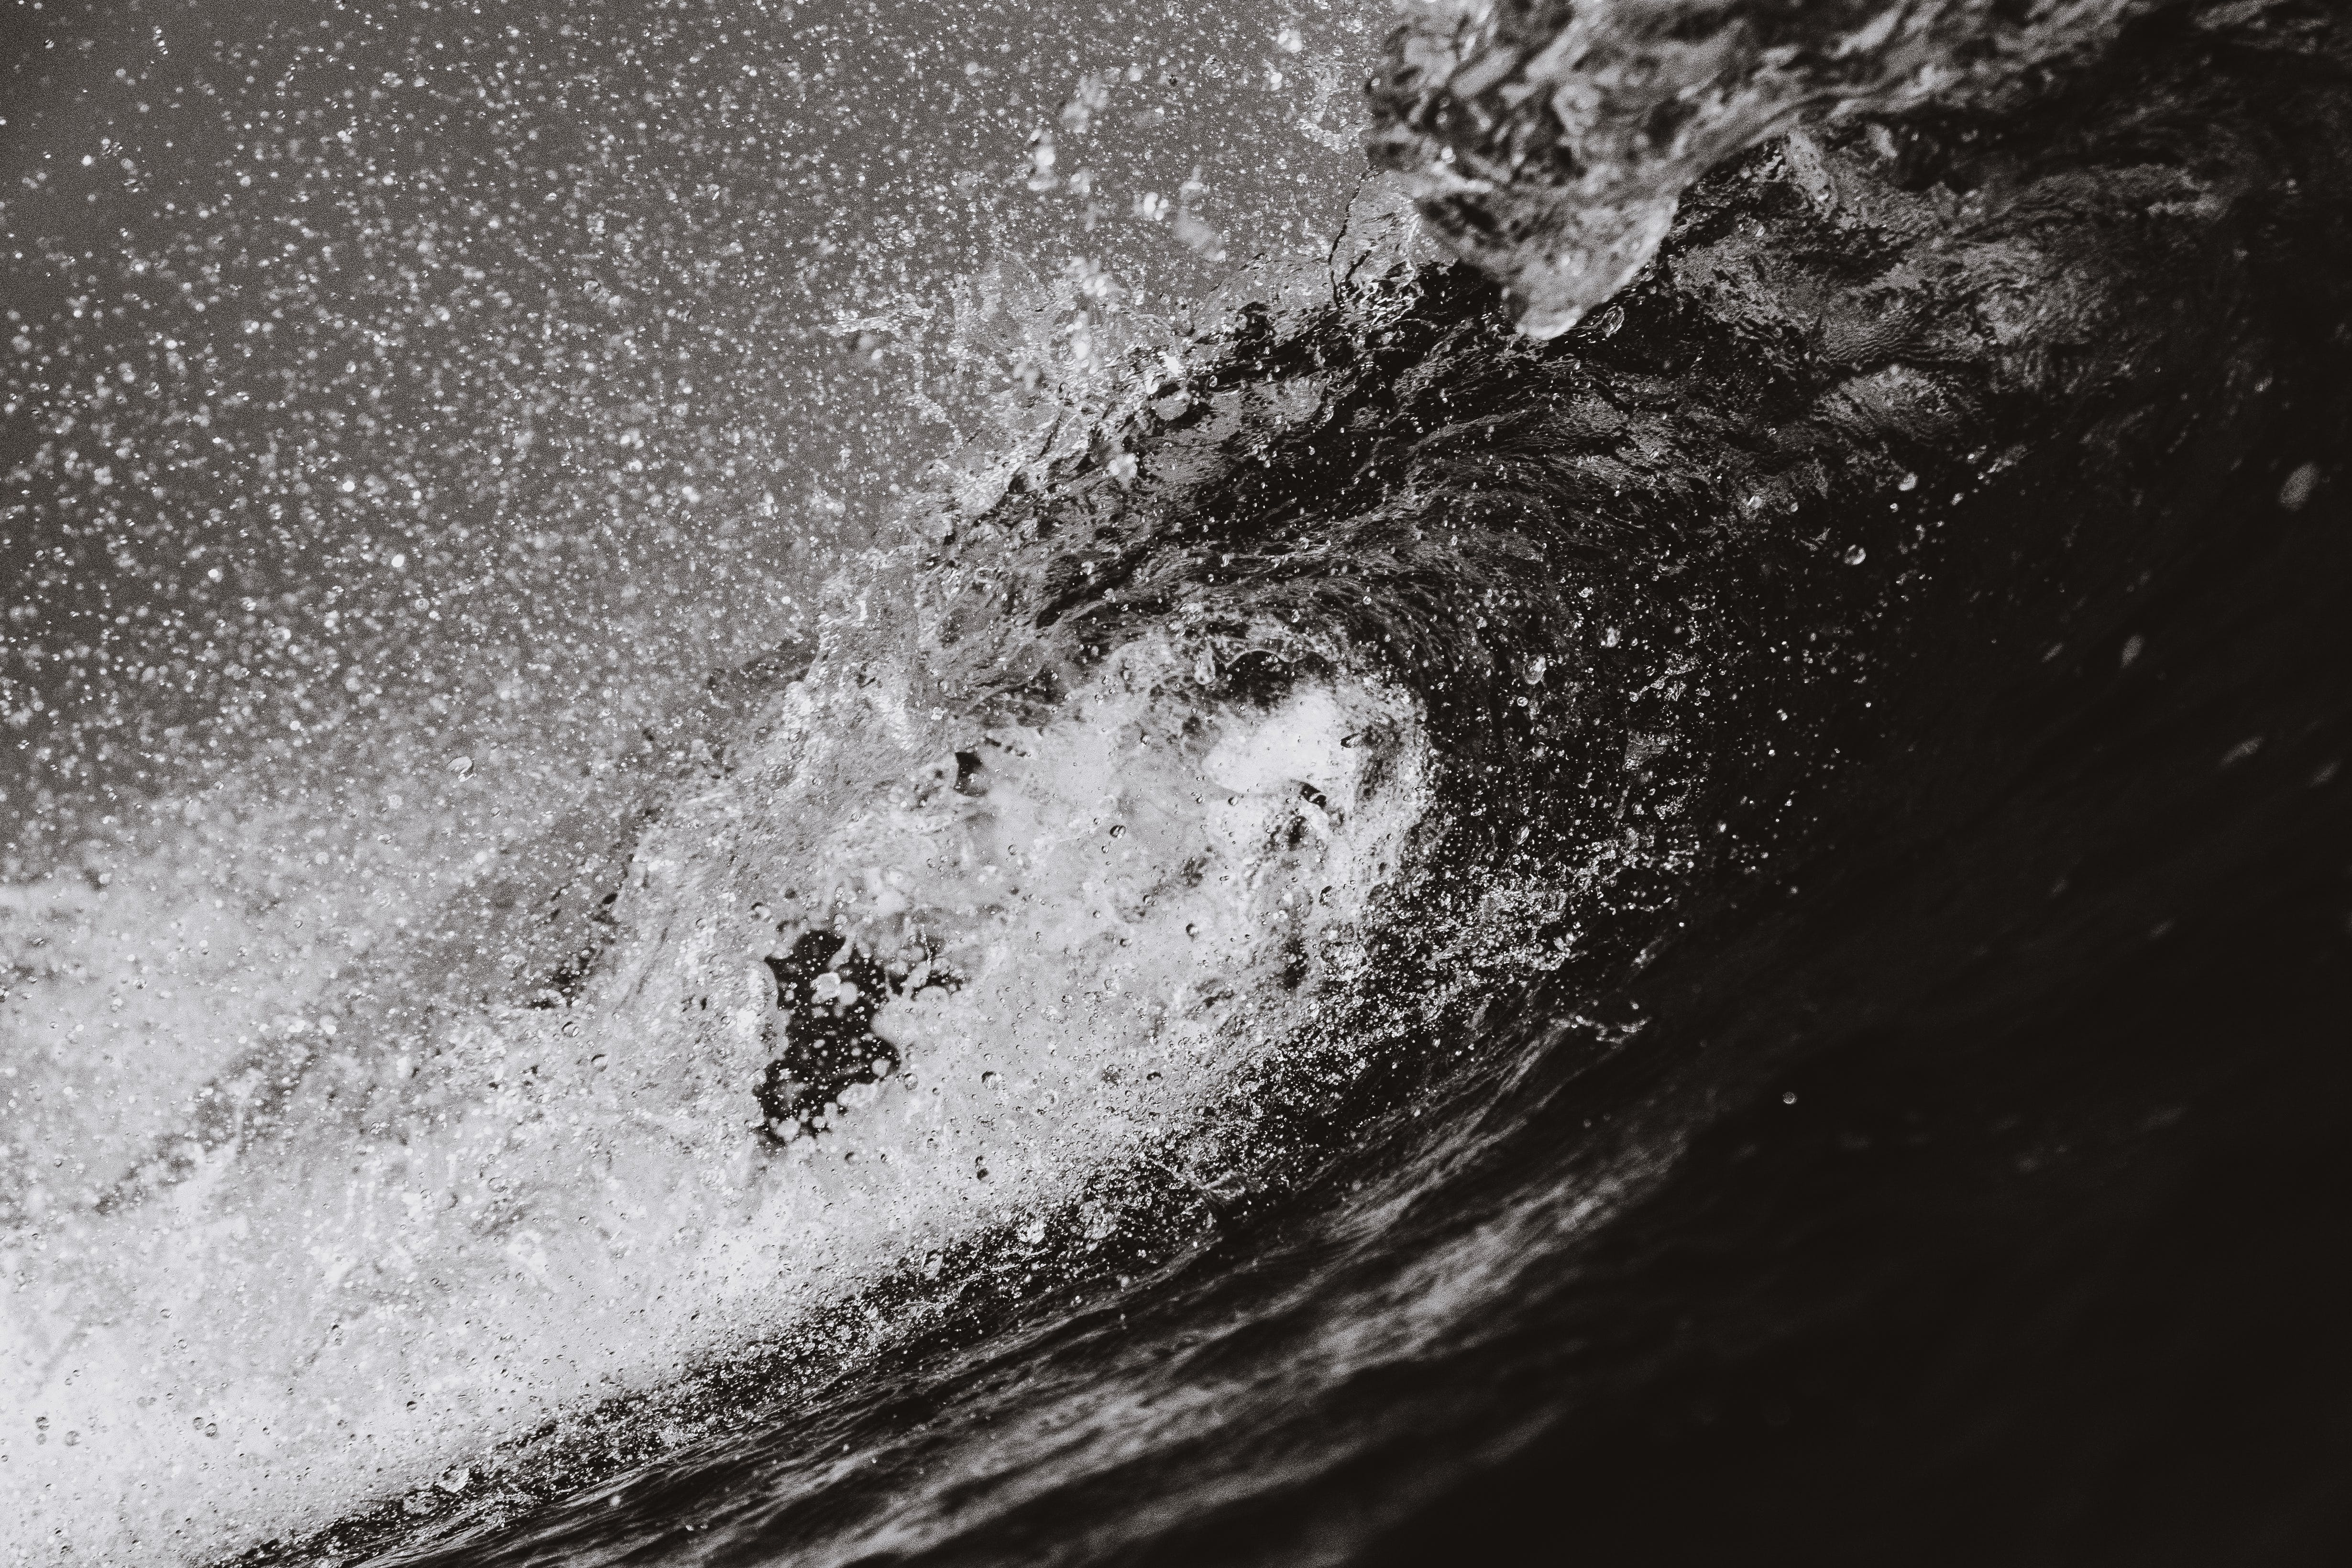 Grayscale Photo of Sea Waves